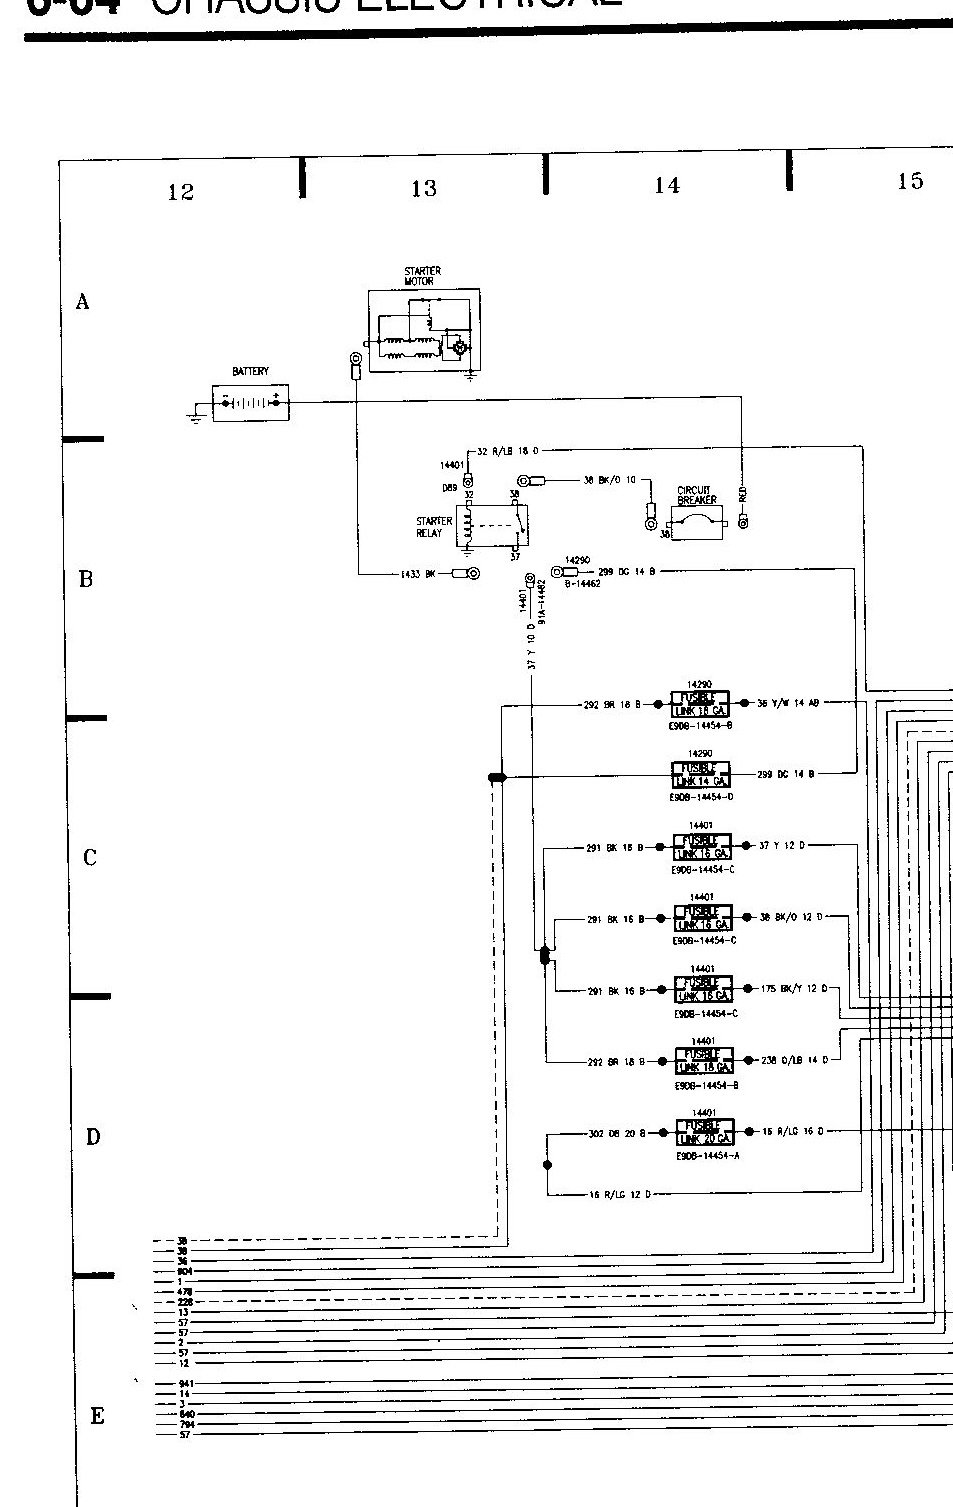 medium resolution of 1990 mustang solenoid wiring wiring diagrams terms 1990 mustang lx 5 0 starter solenoid wiring problems